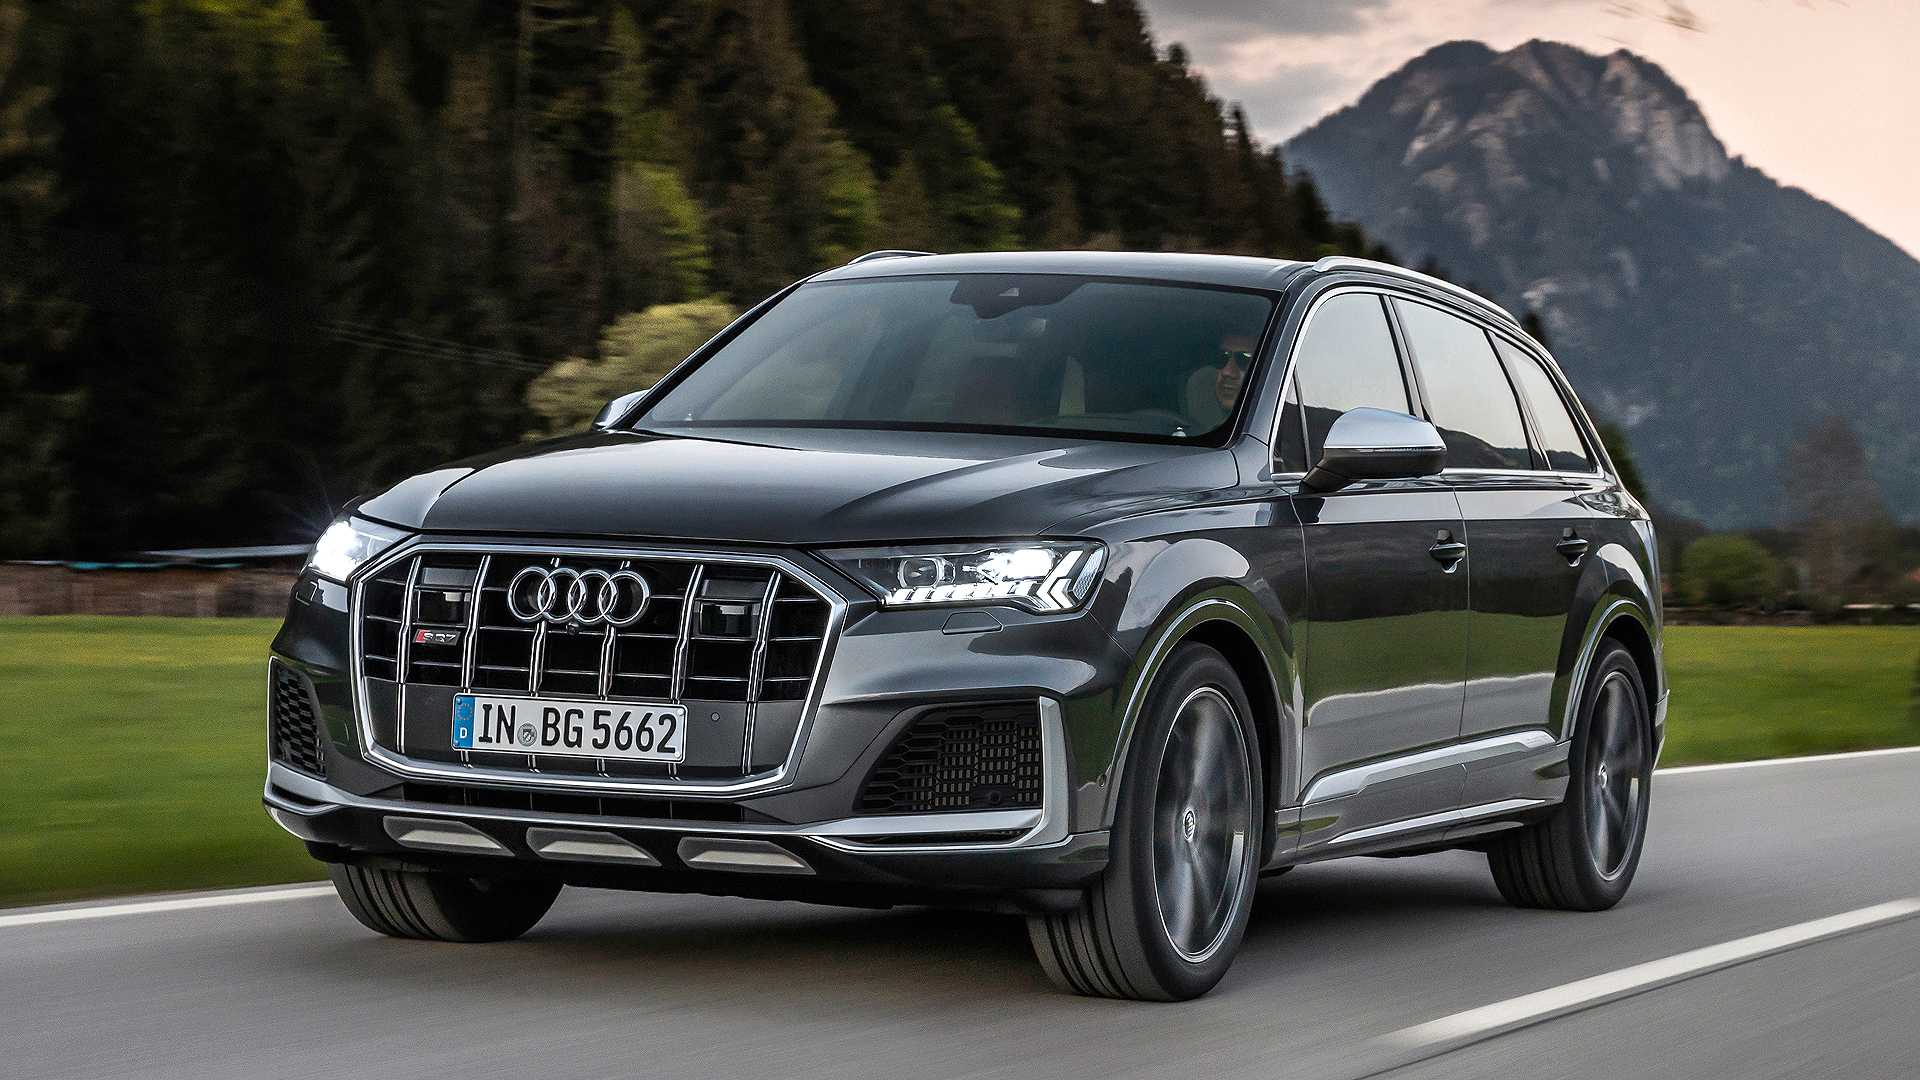 New Generation Audi Sq7 And Sq8 To Arrive In The Uk This Autumn